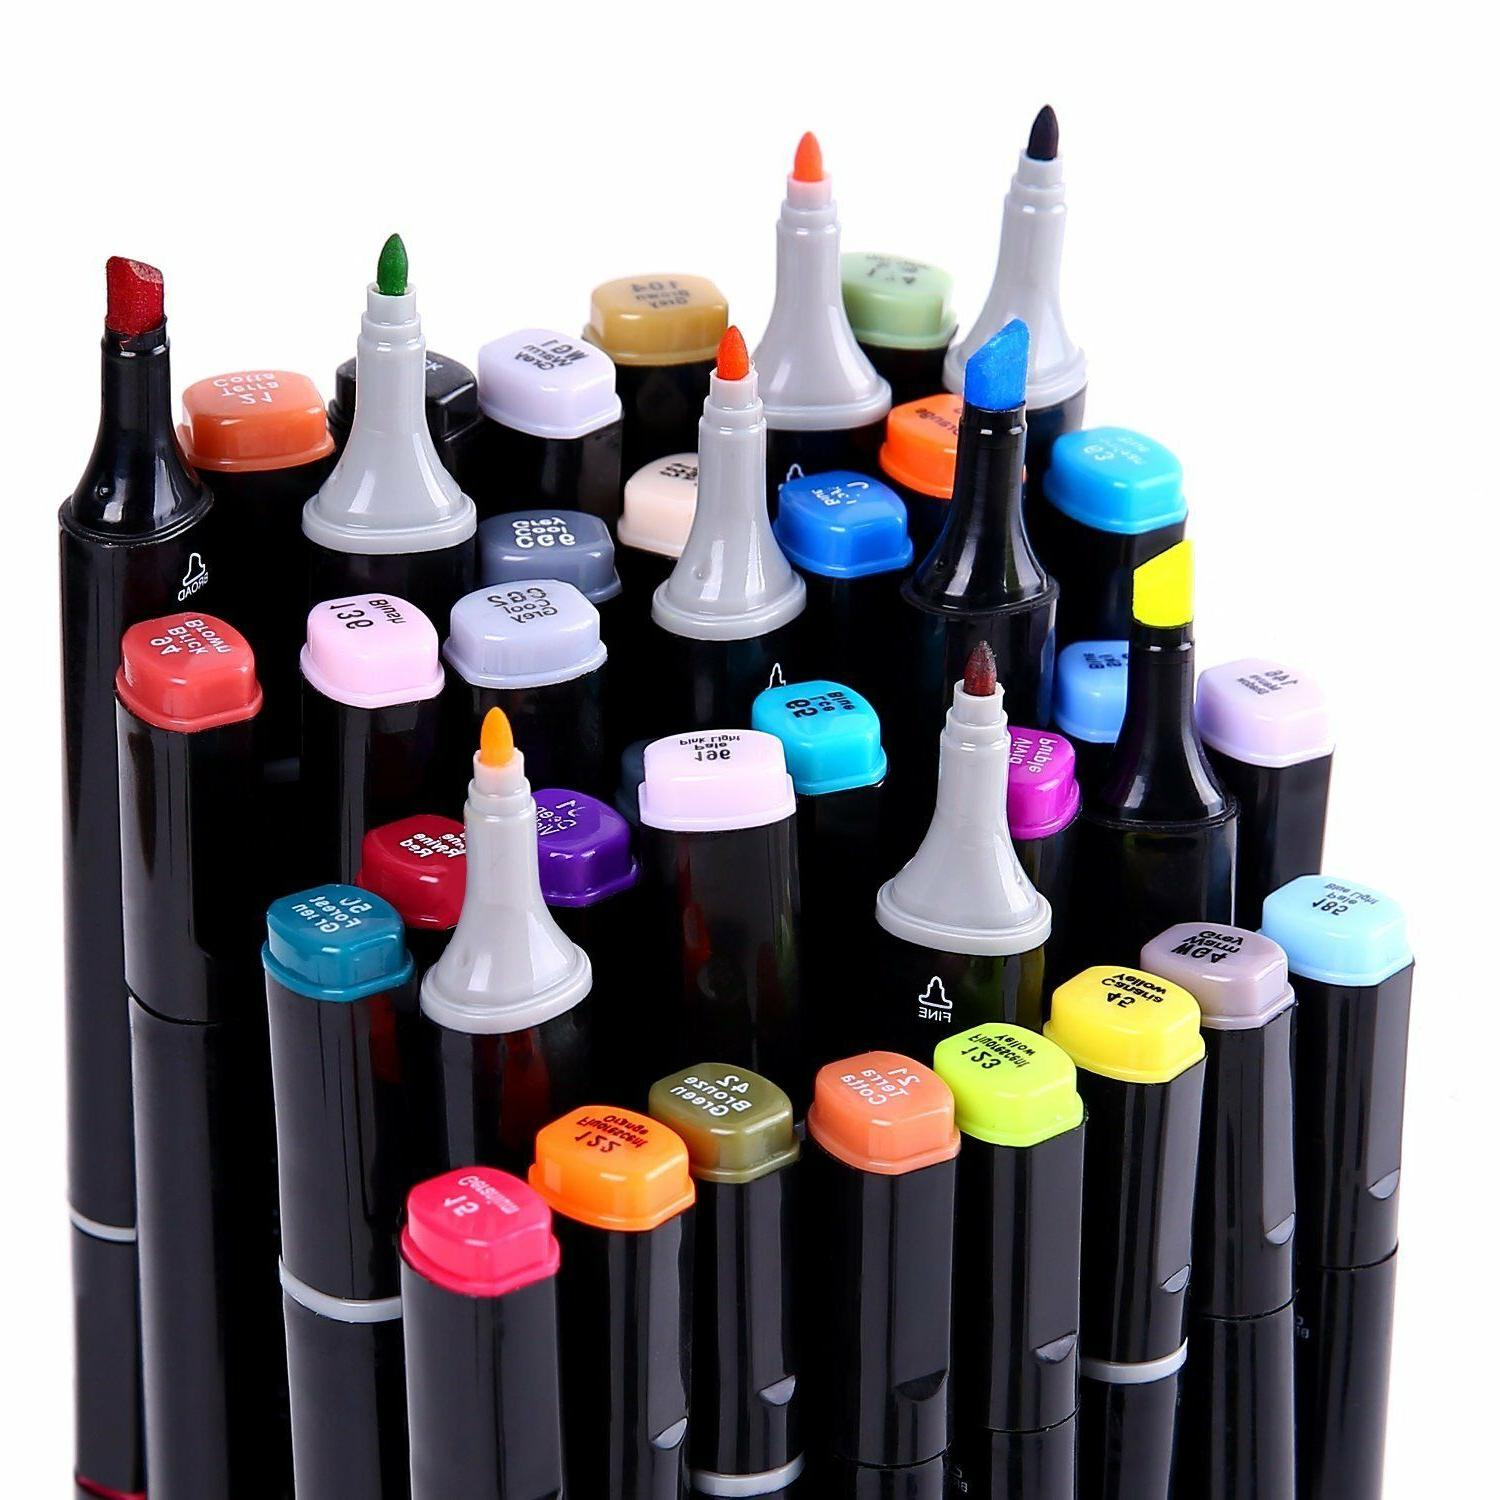 Ohuhu Tip Brush Marker Pens for Coloring Drawing